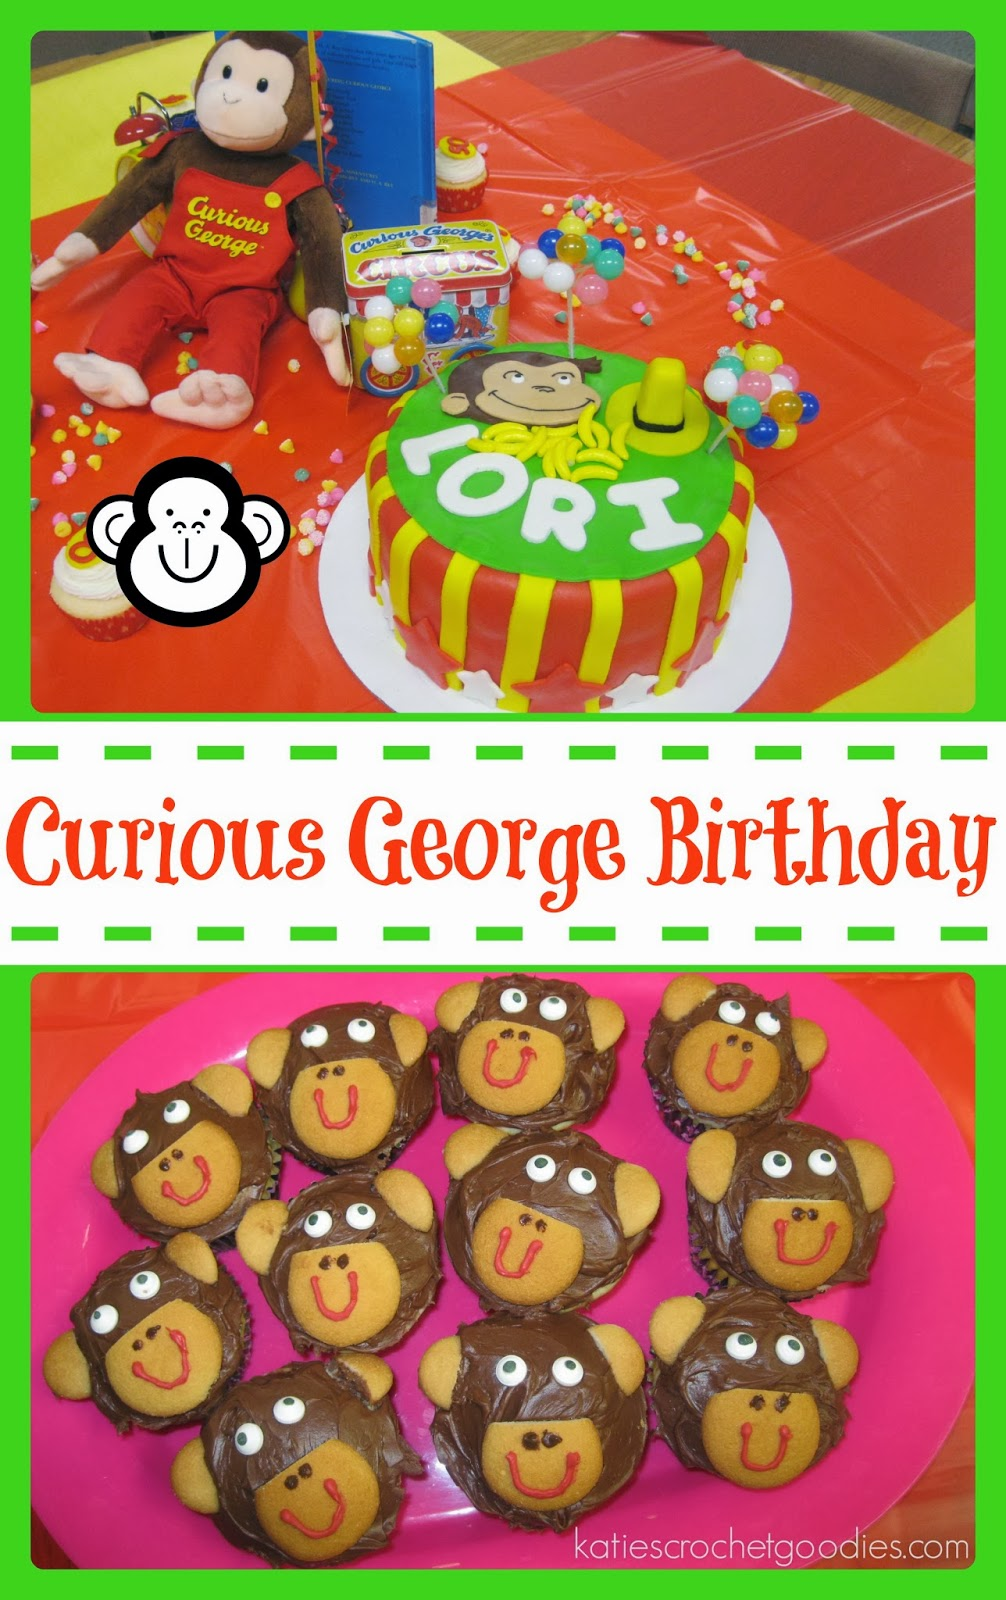 sc 1 st  Katie\u0027s Crochet Goodies & Curious George Birthday - Katie\u0027s Crochet Goodies